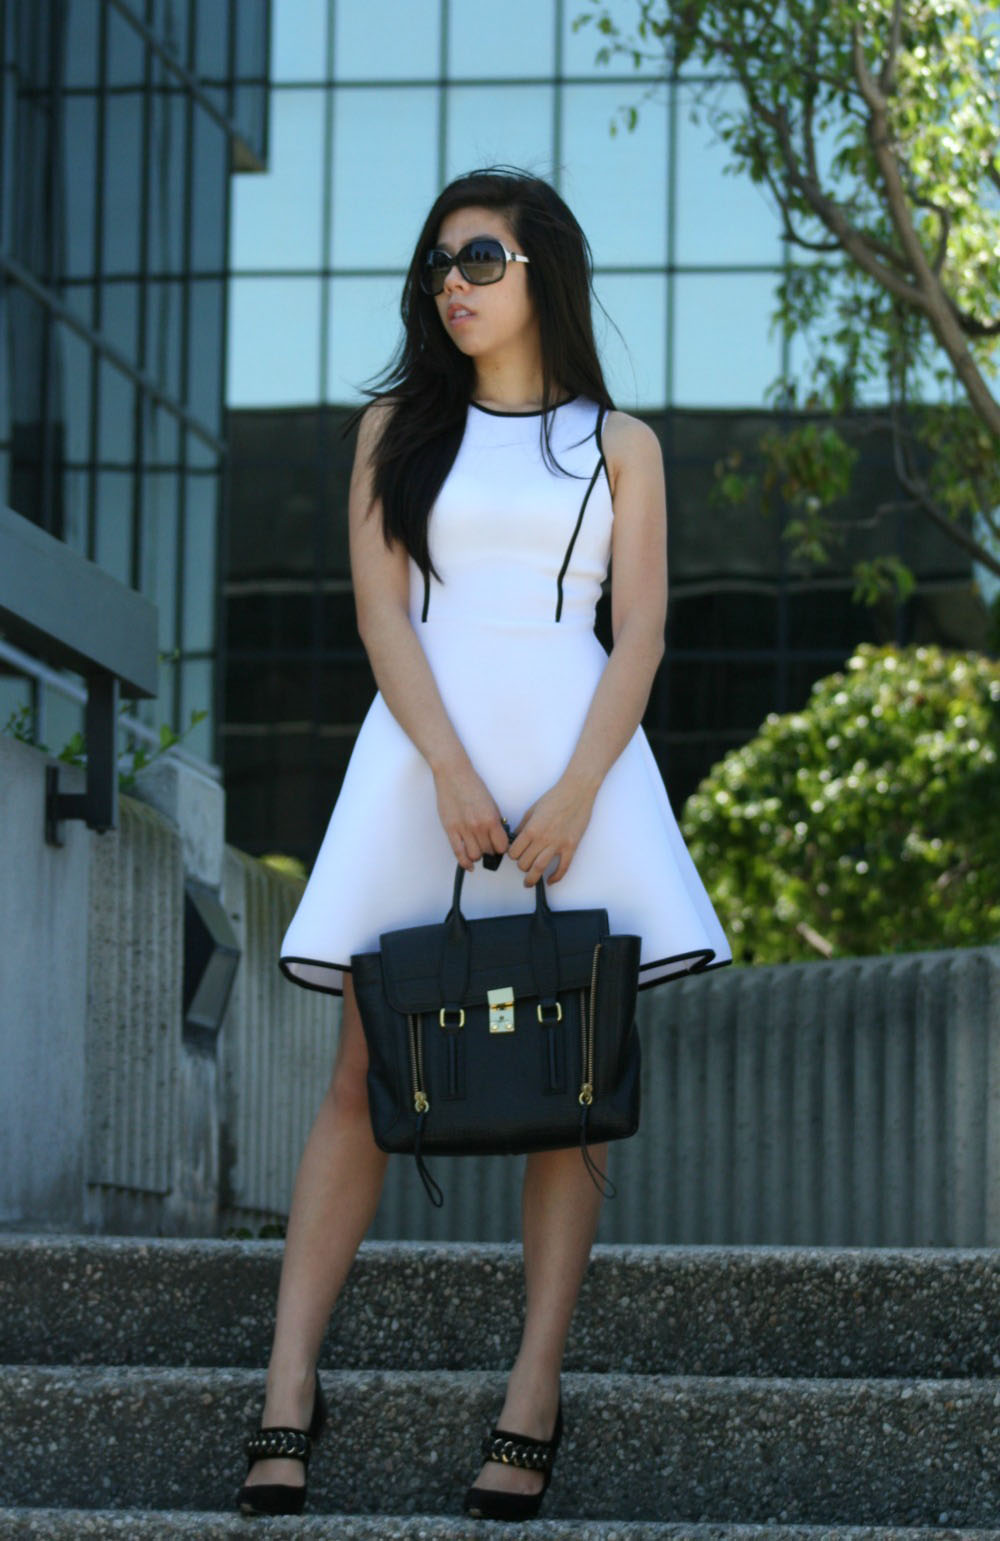 How to Wear a Neoprene Dress